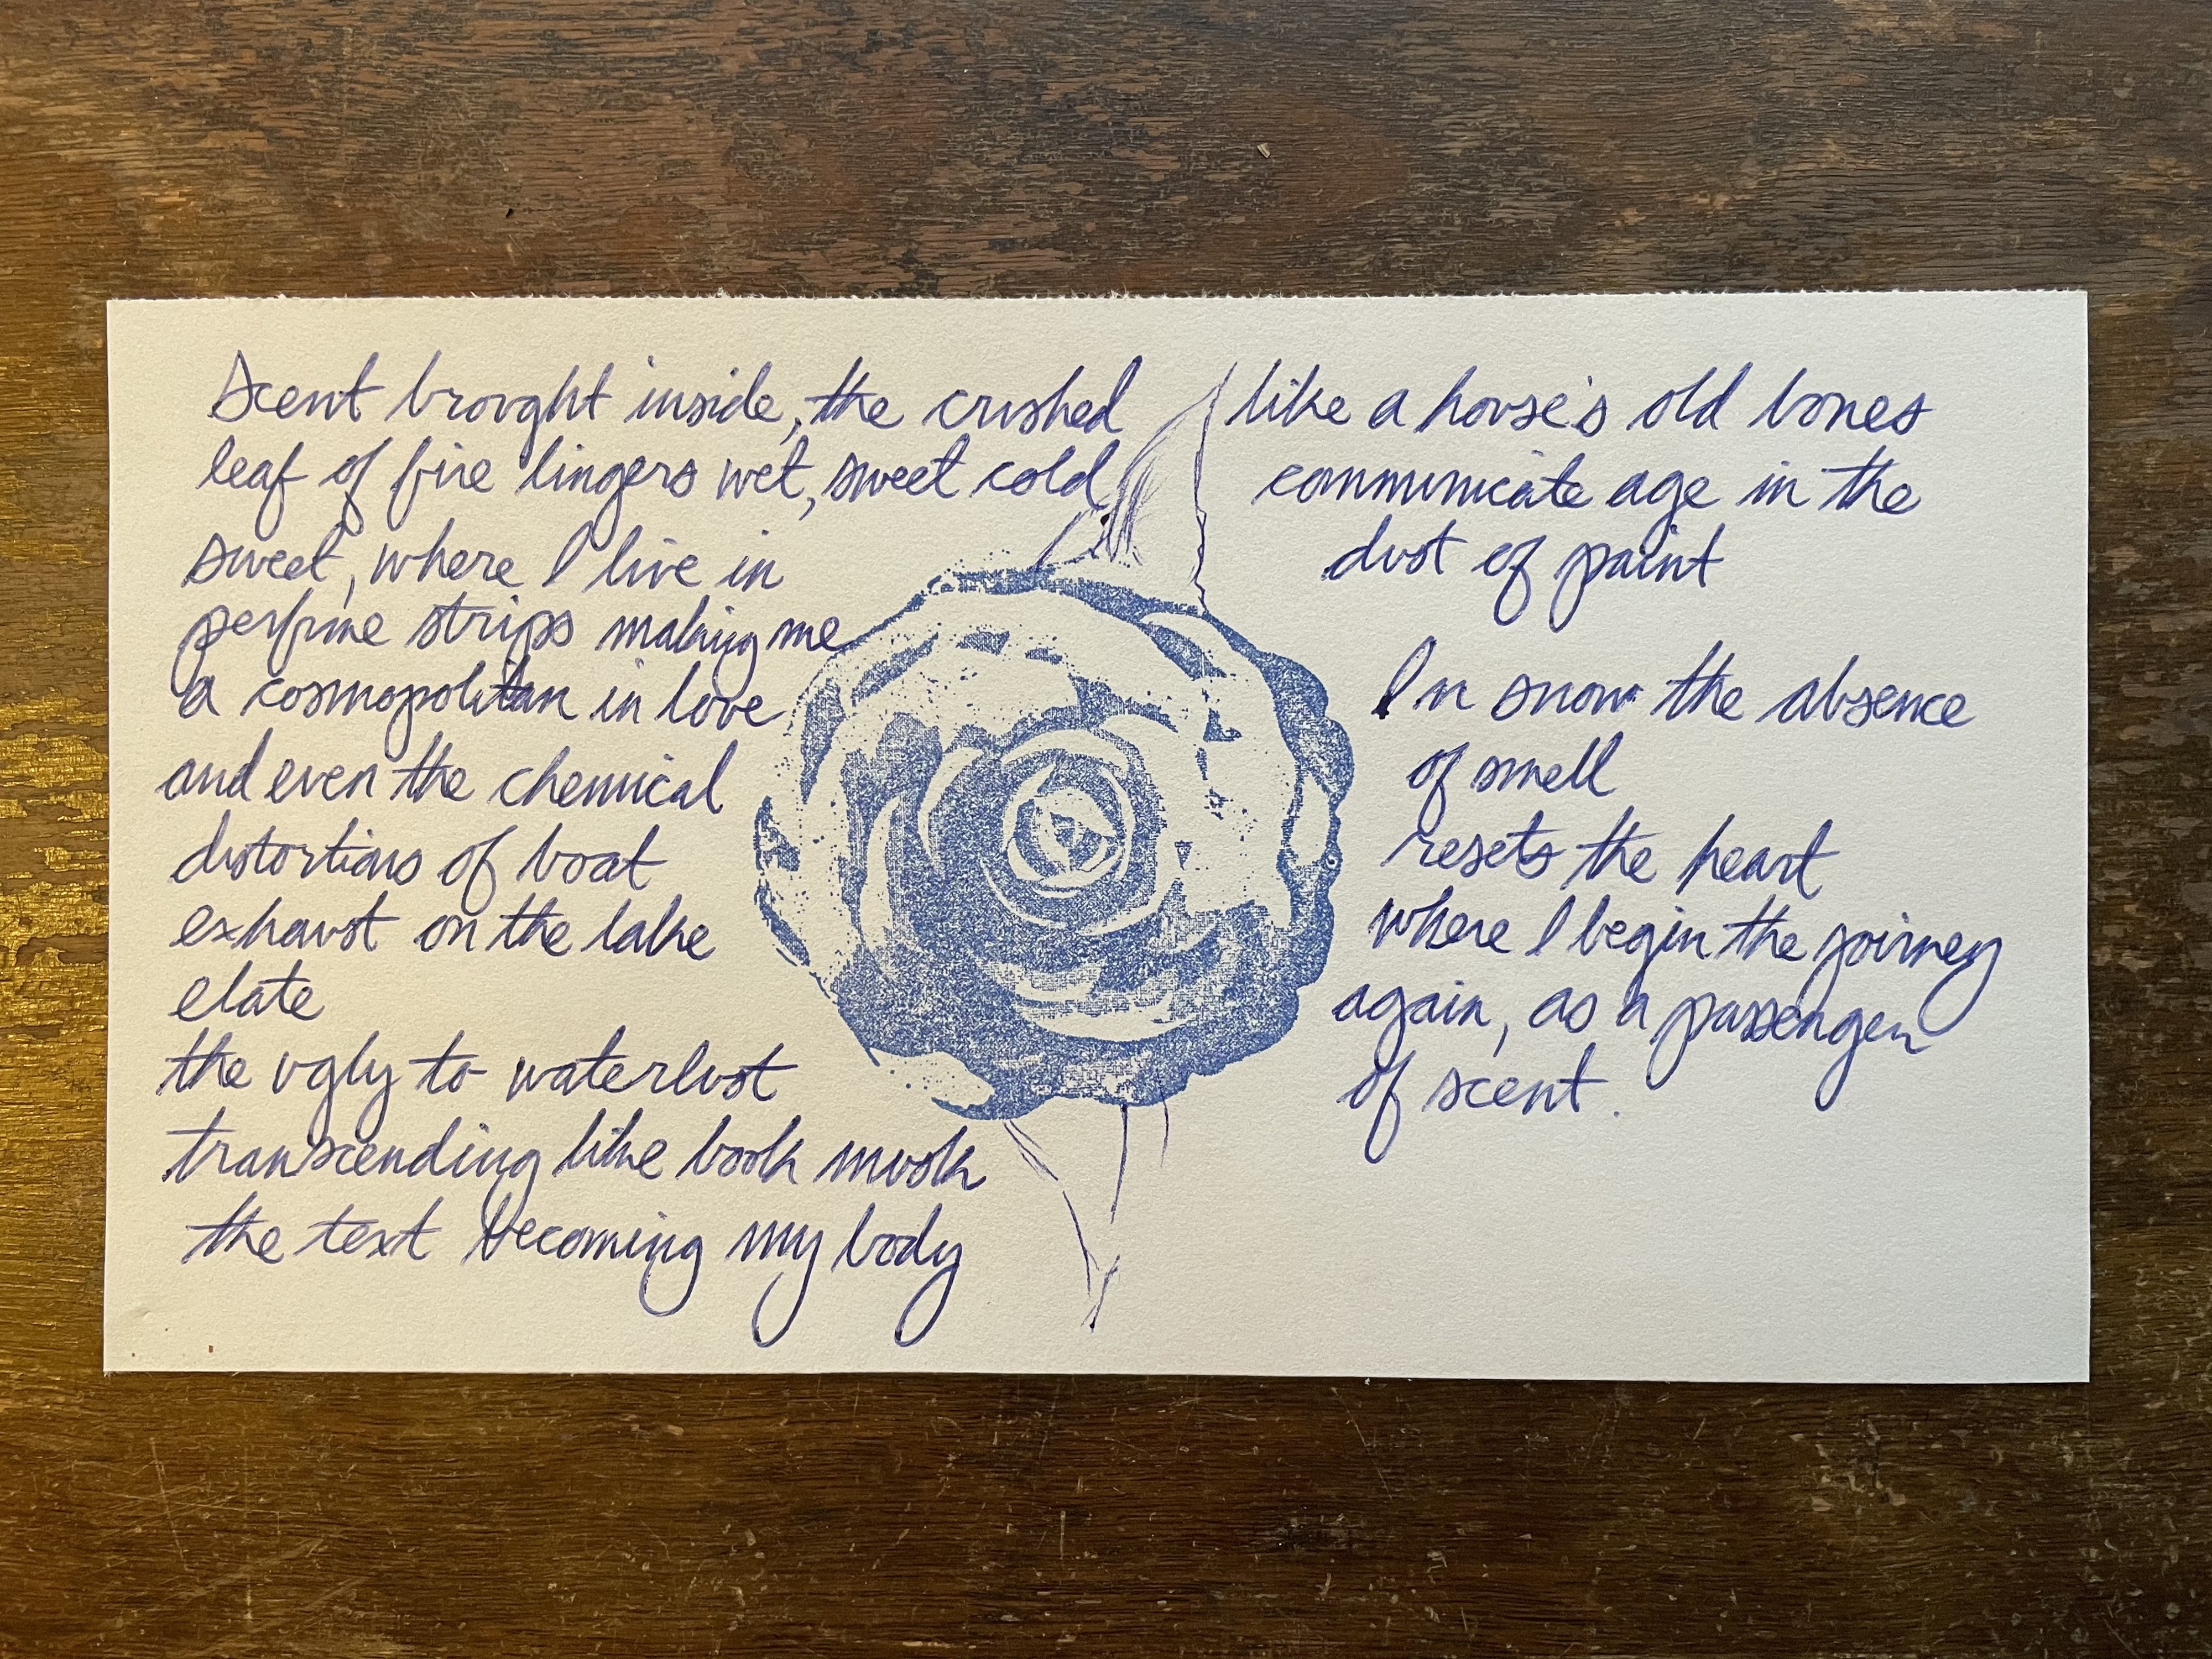 Photo of the poem with blie rose stamp on centre, paper reasting on weathered side table.